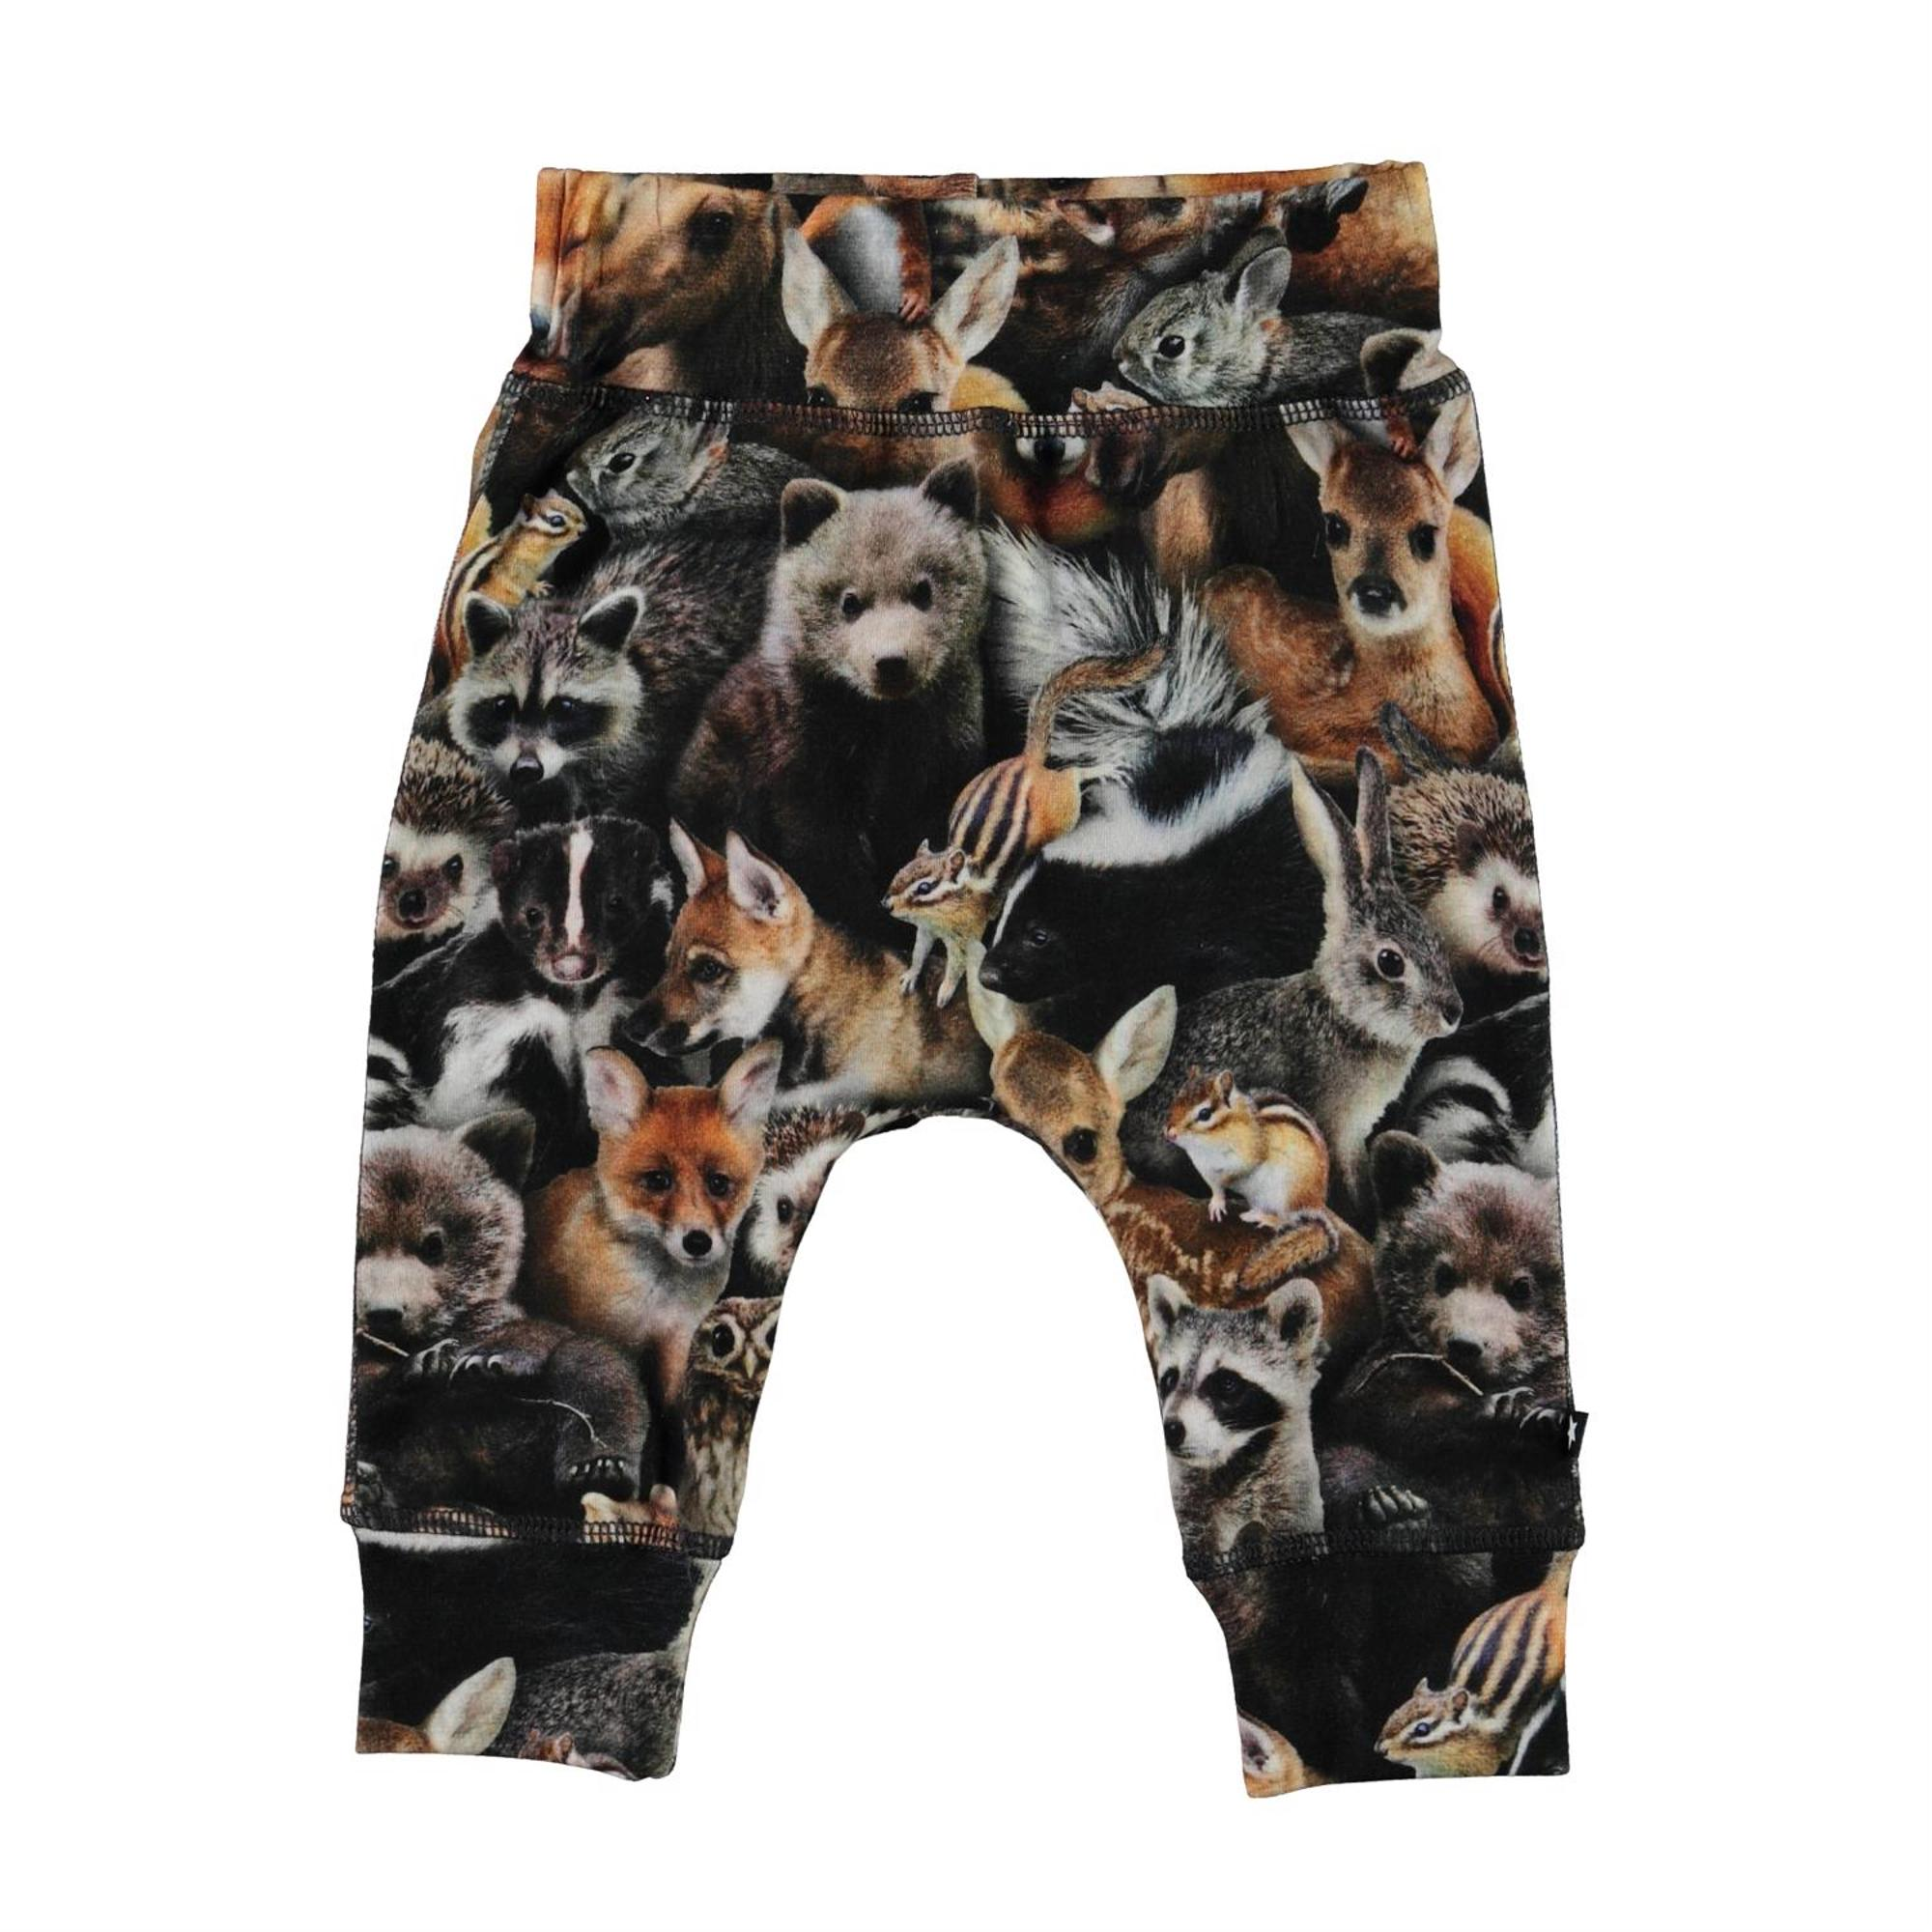 Molo Sammy Soft Pants in Forest Animals